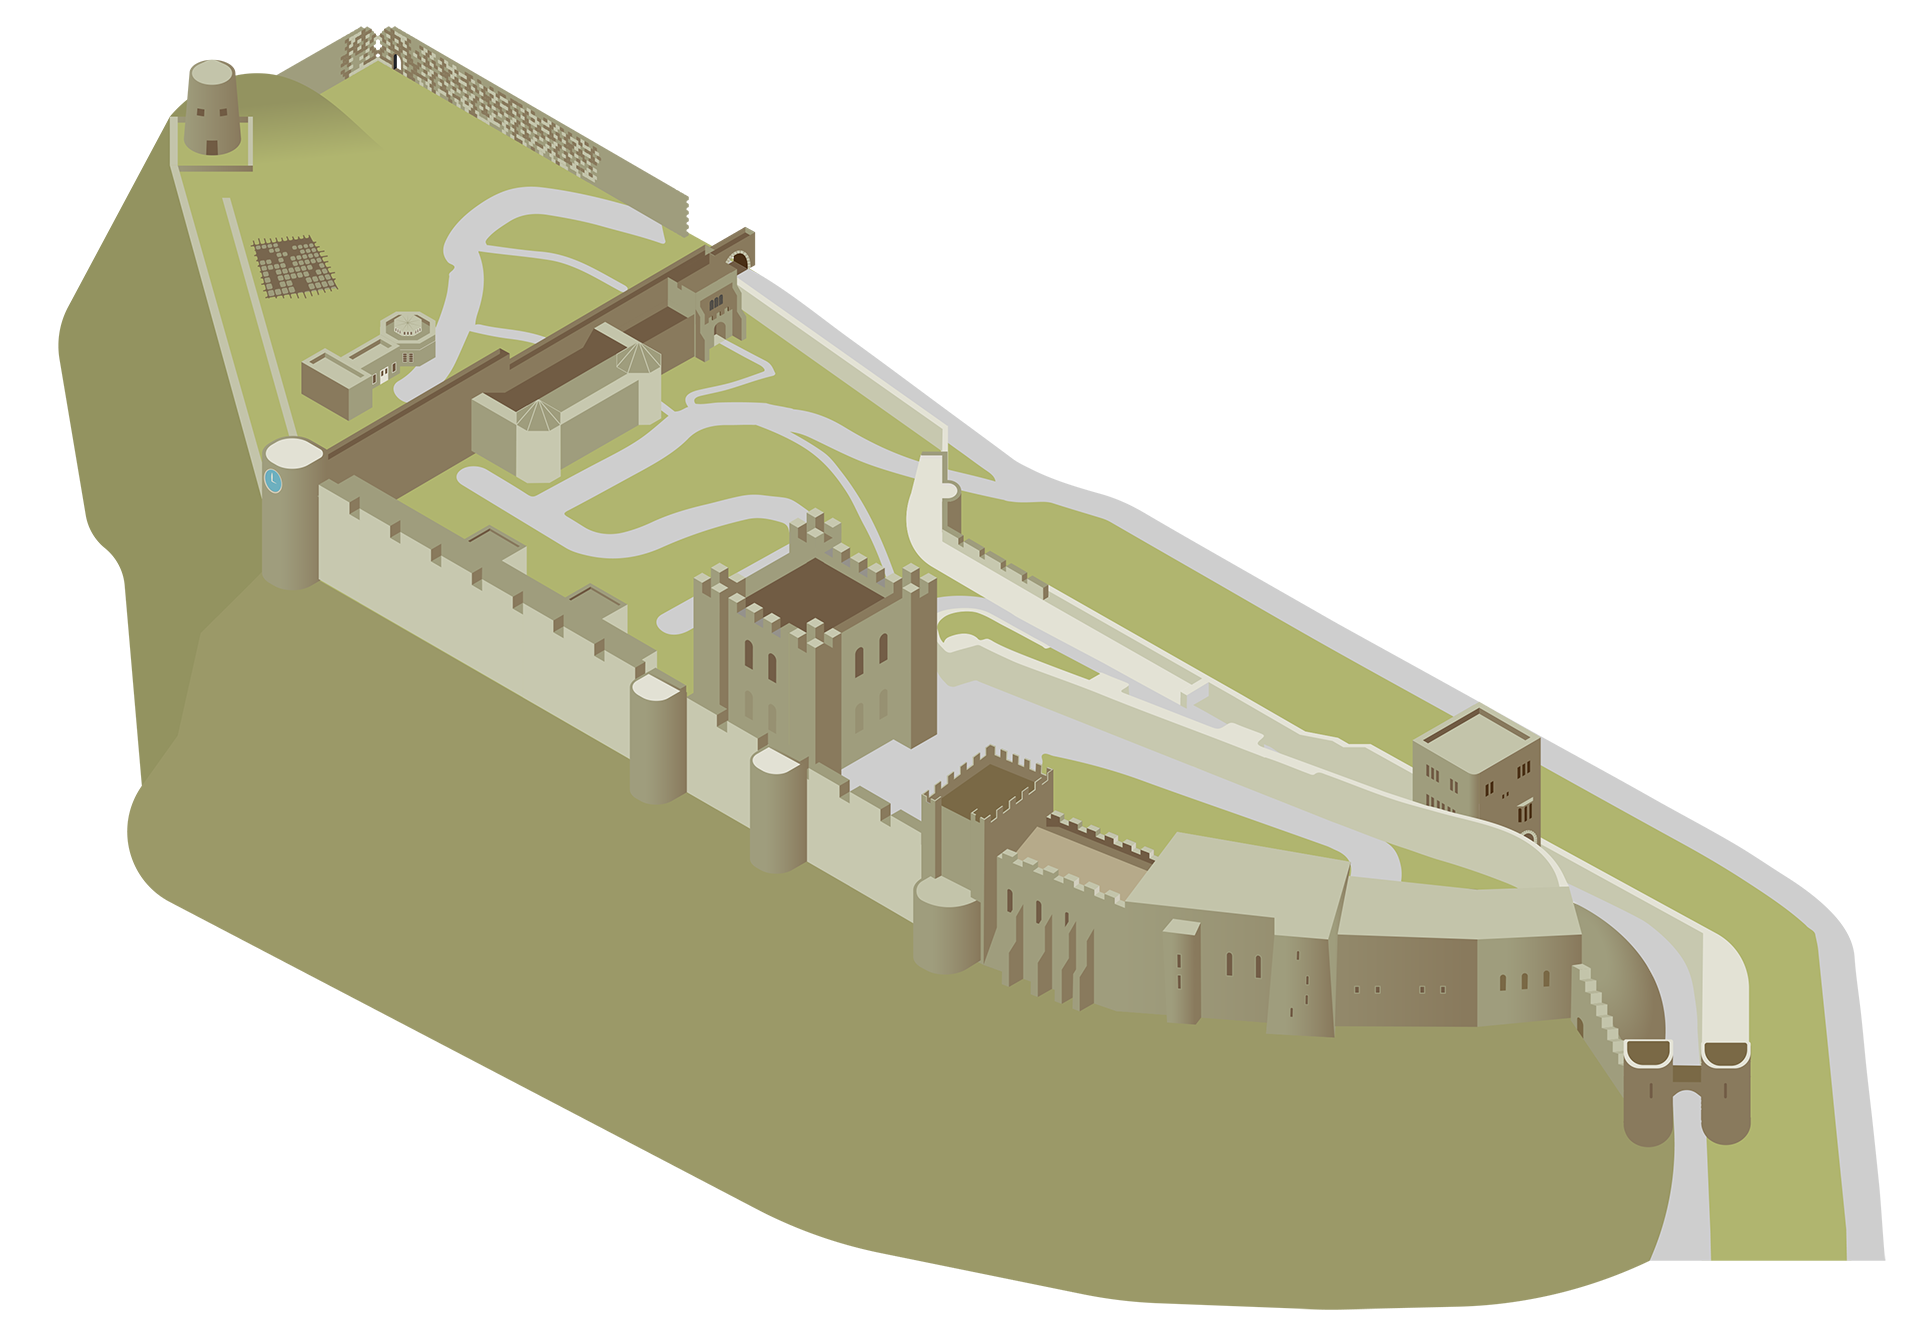 Pin On Castles Forts